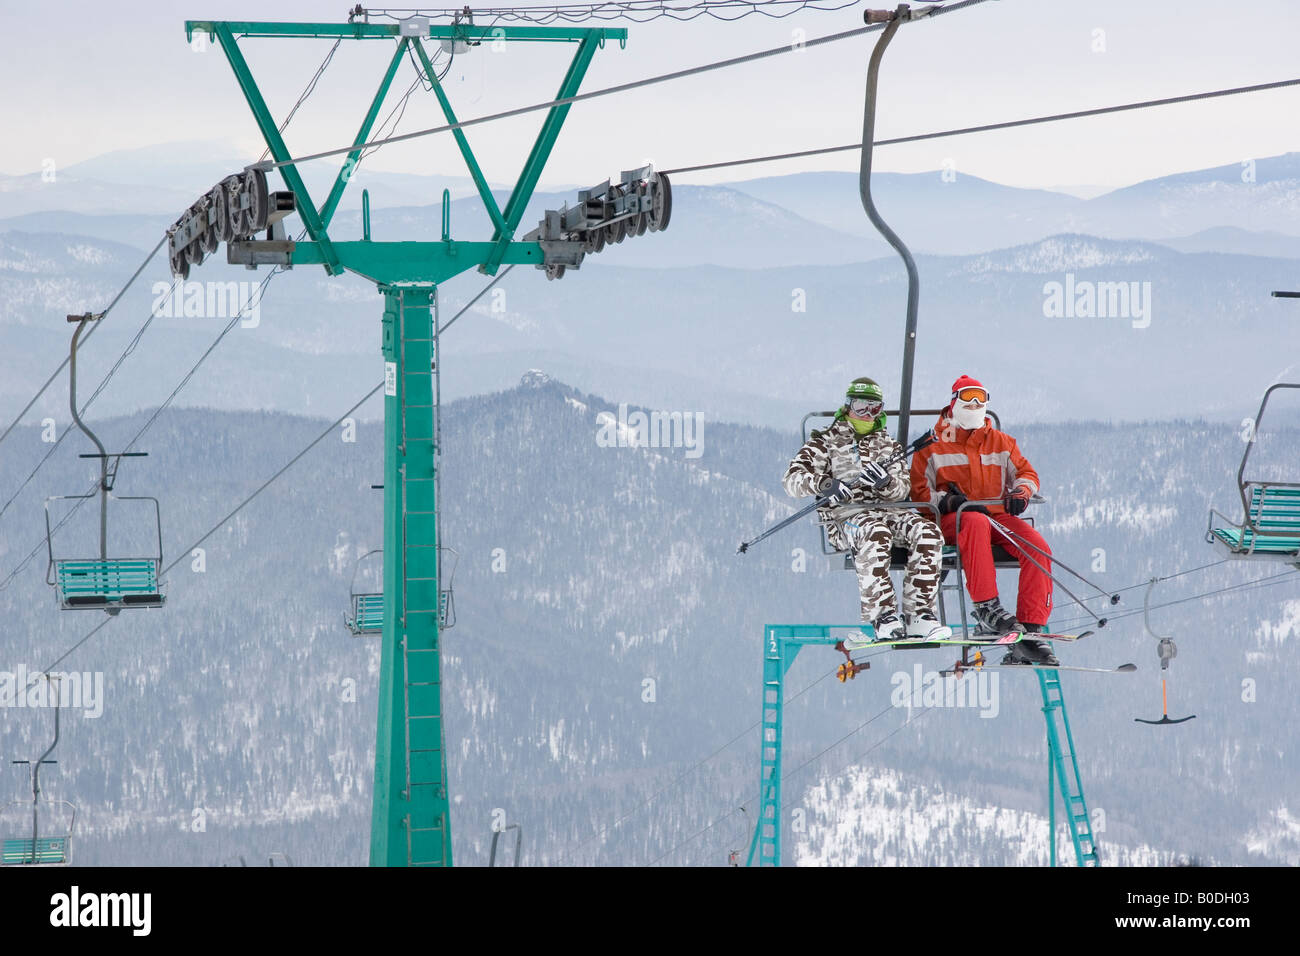 Two mountain-skiers going up the hill by cable-way - Stock Image